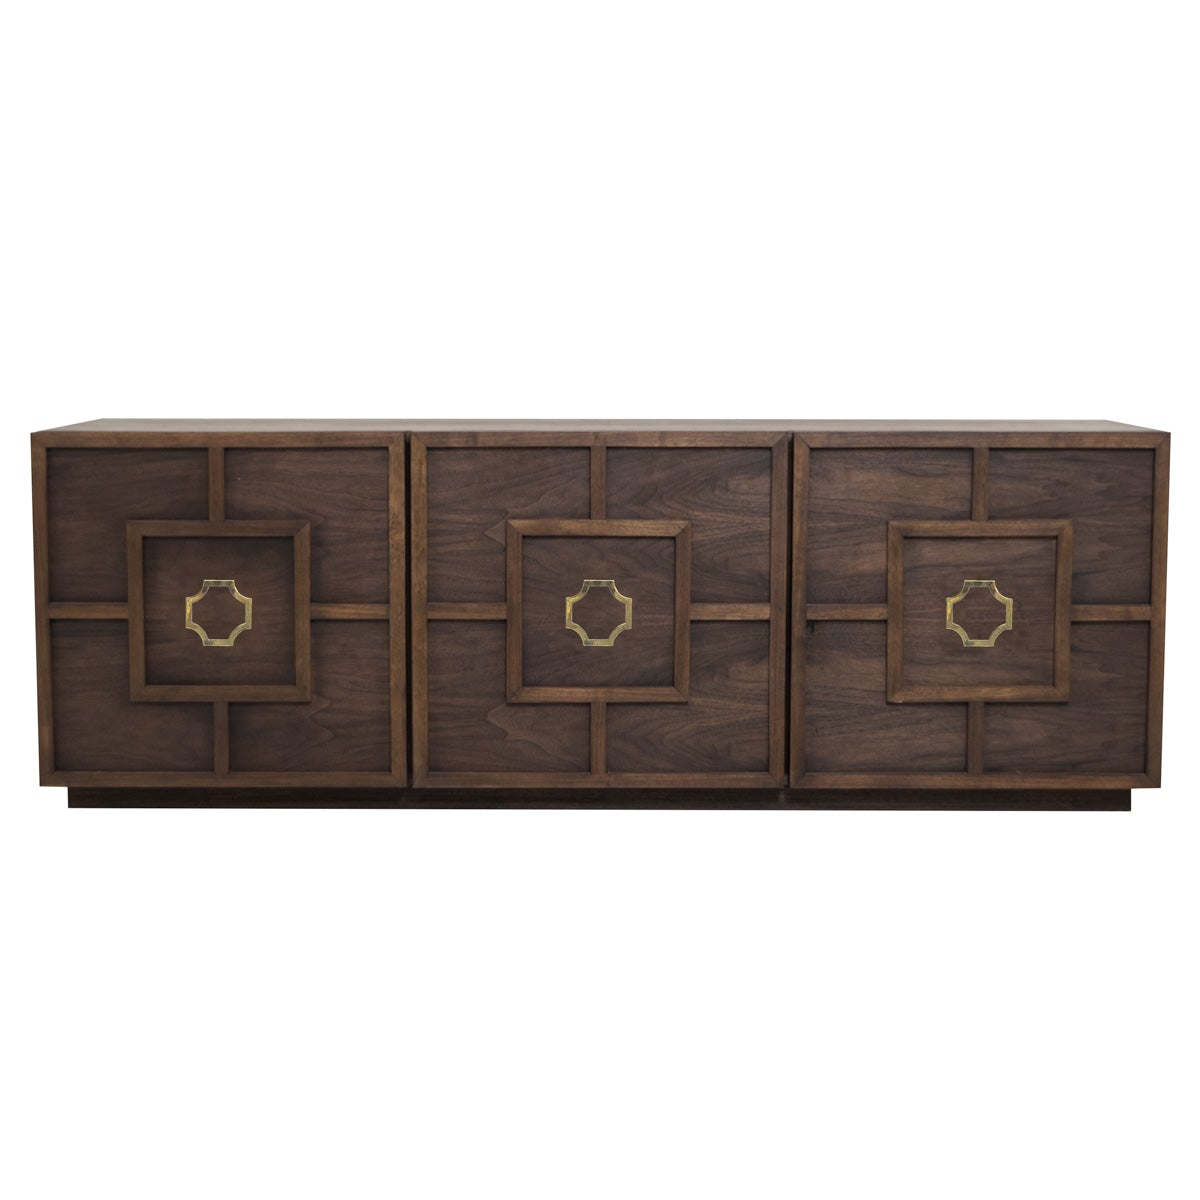 St. Tropez 3 Door Credenza in Oiled Walnut - ModShop1.com